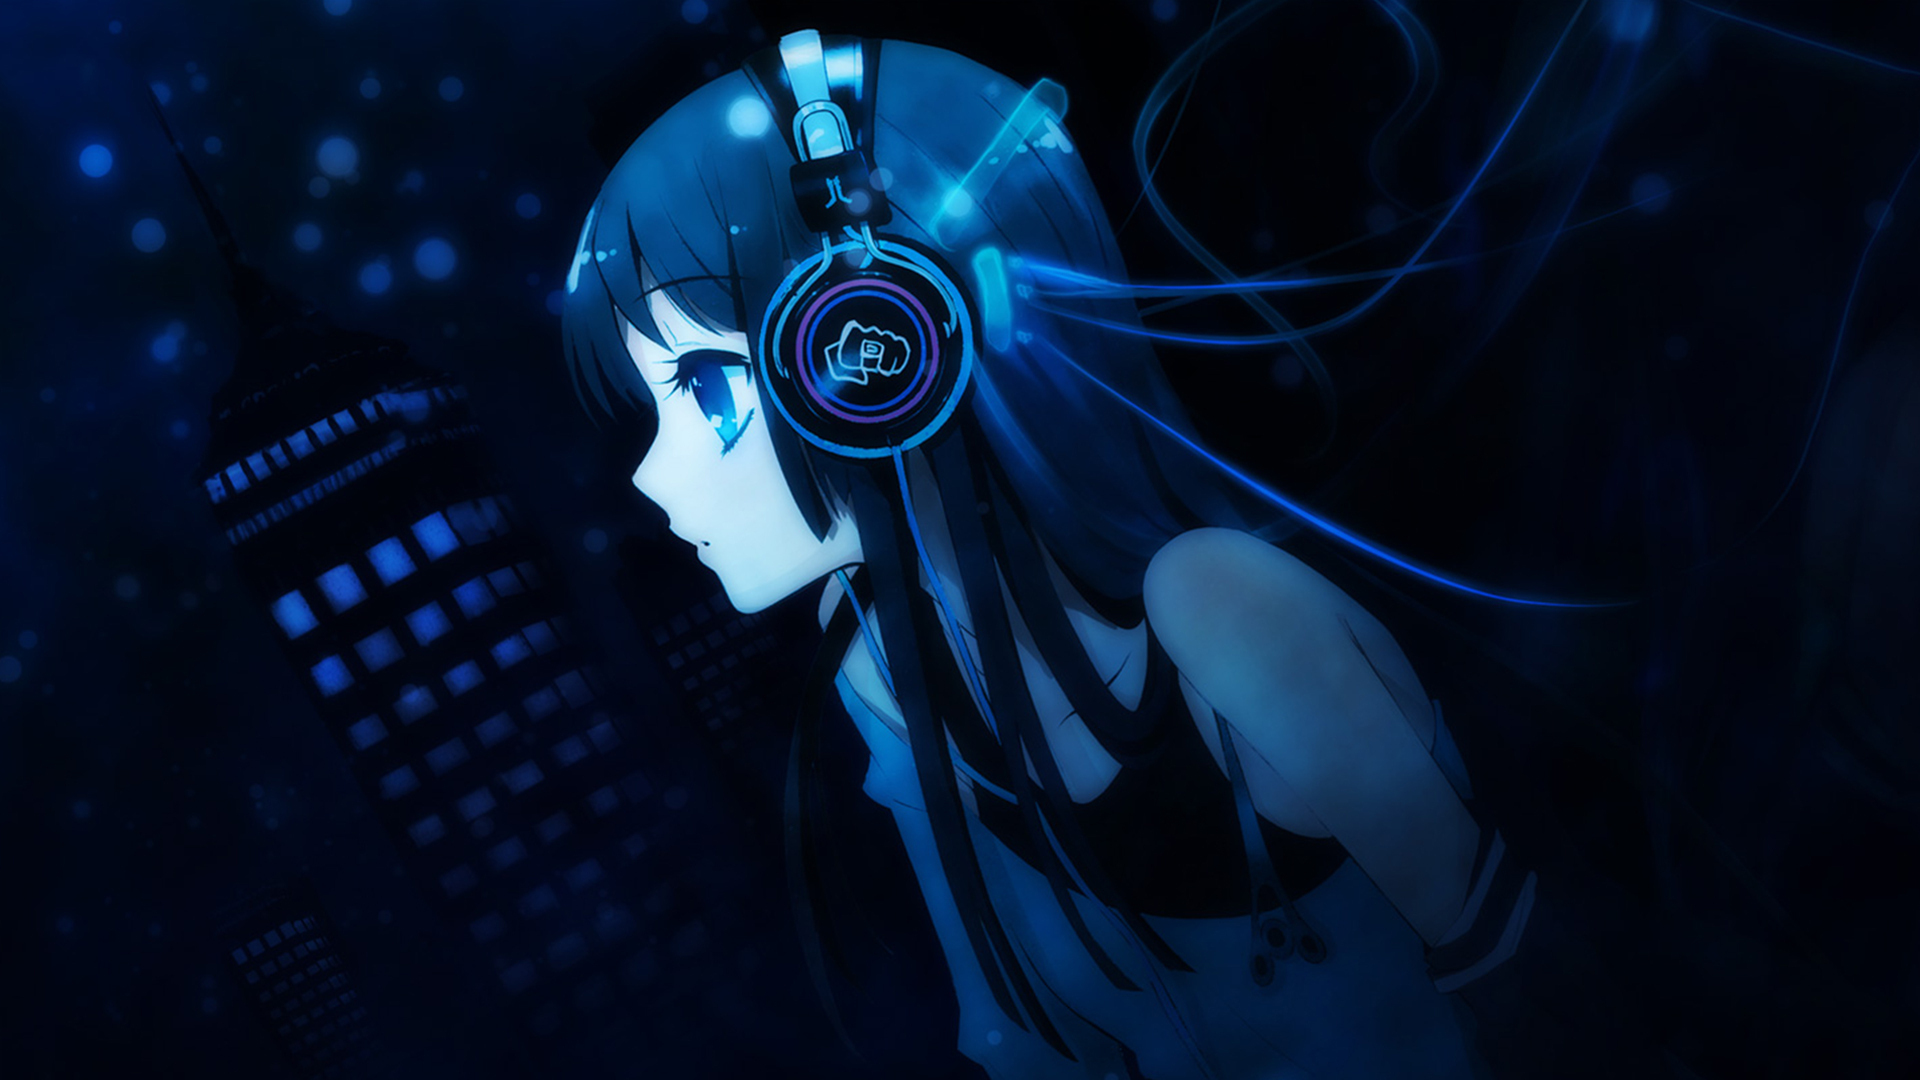 Download mobile wallpaper Music, Anime, Girls for free.